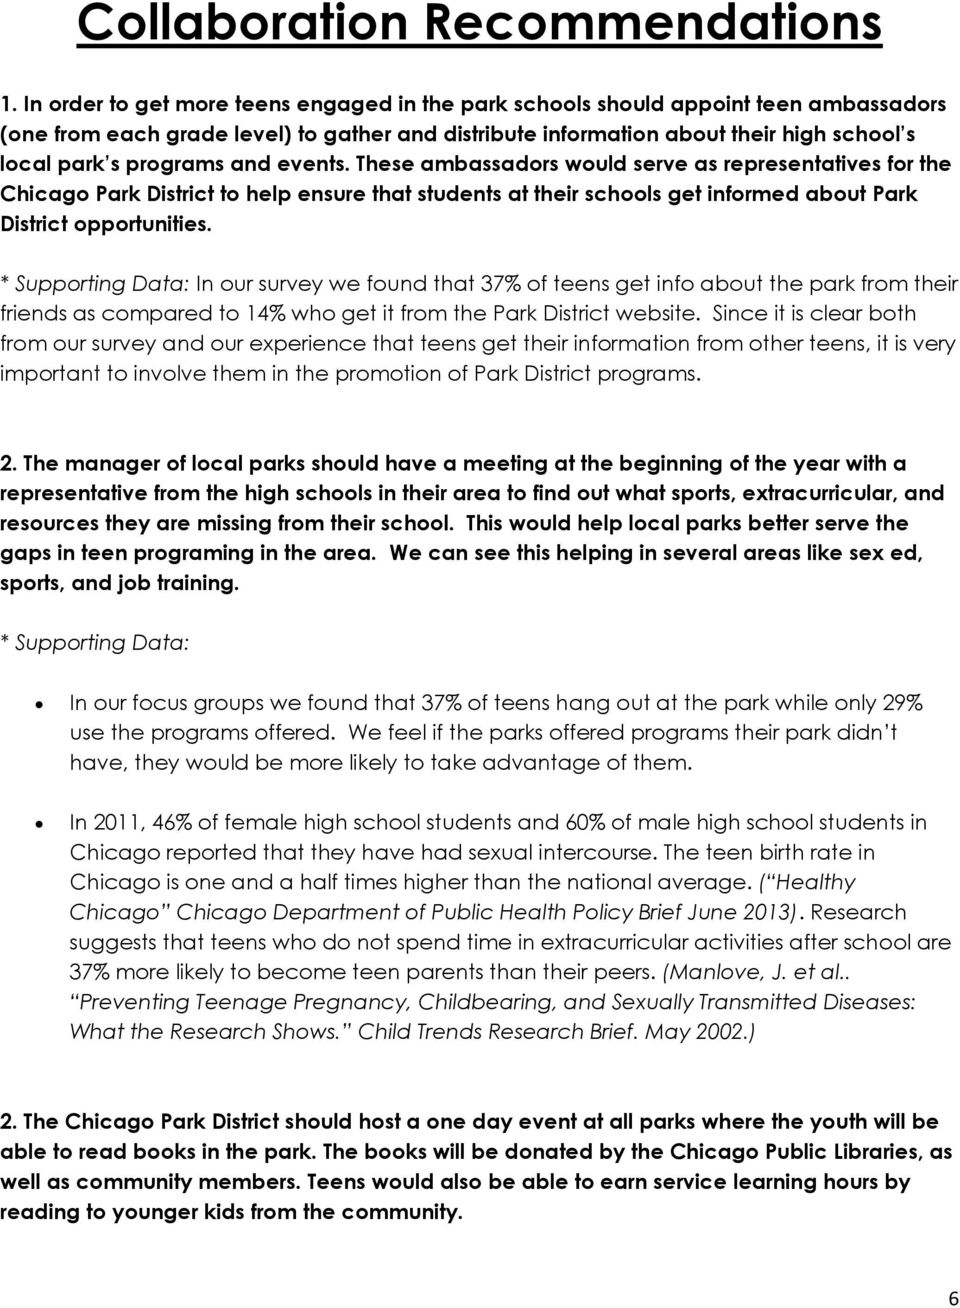 and events. These ambassadors would serve as representatives for the Chicago Park District to help ensure that students at their schools get informed about Park District opportunities.